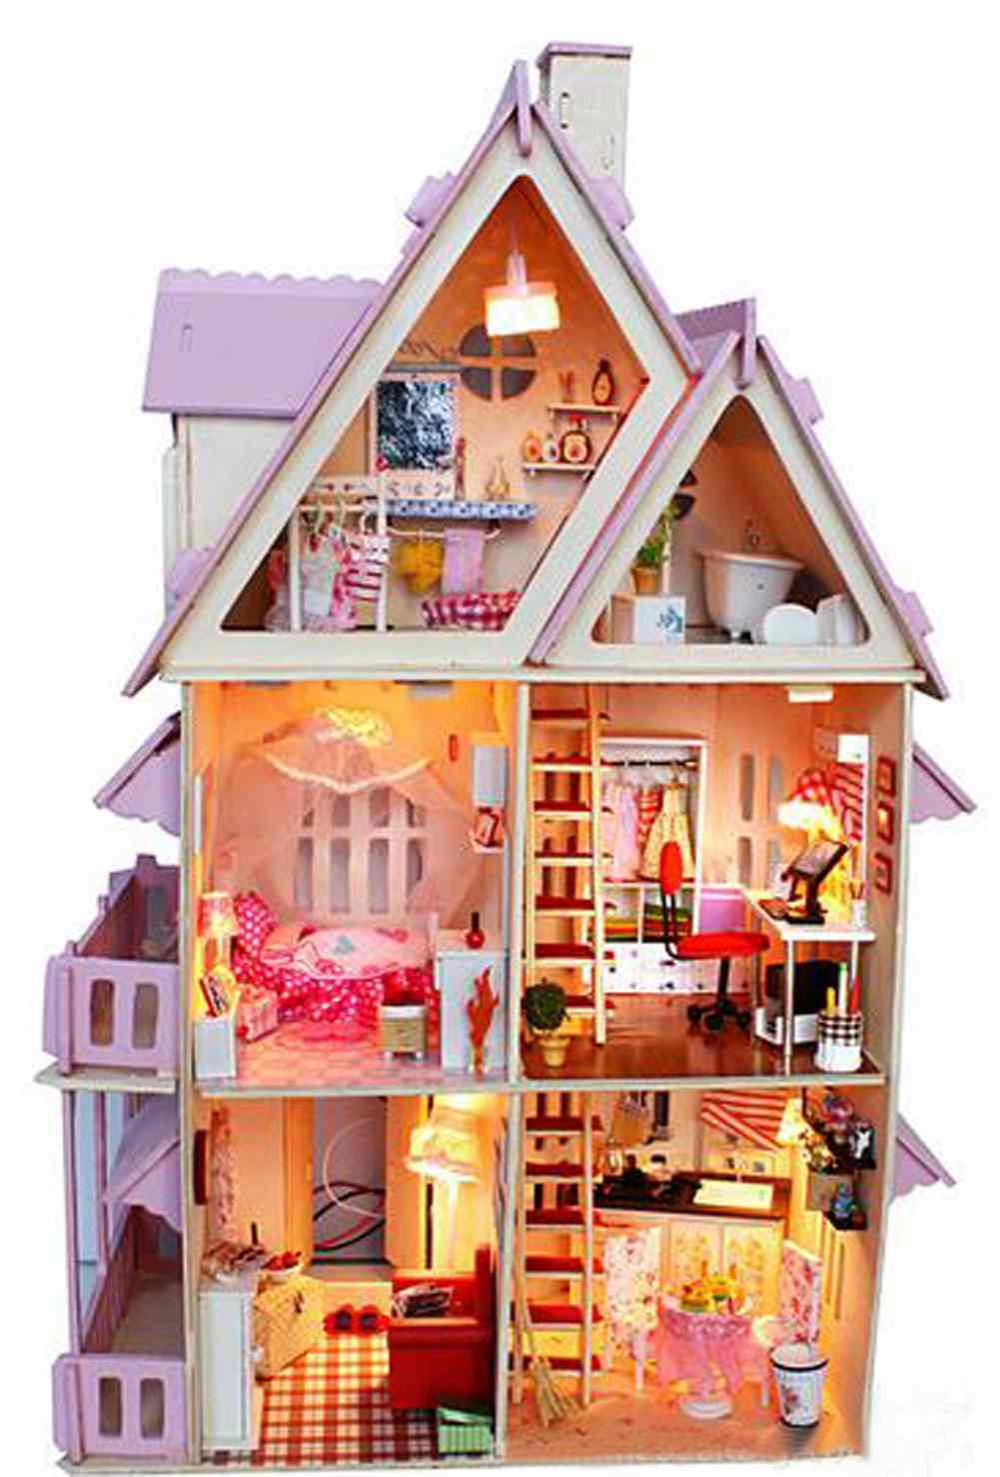 Popular Castle Doll House Buy Cheap Castle Doll House Lots From China Castle Doll House